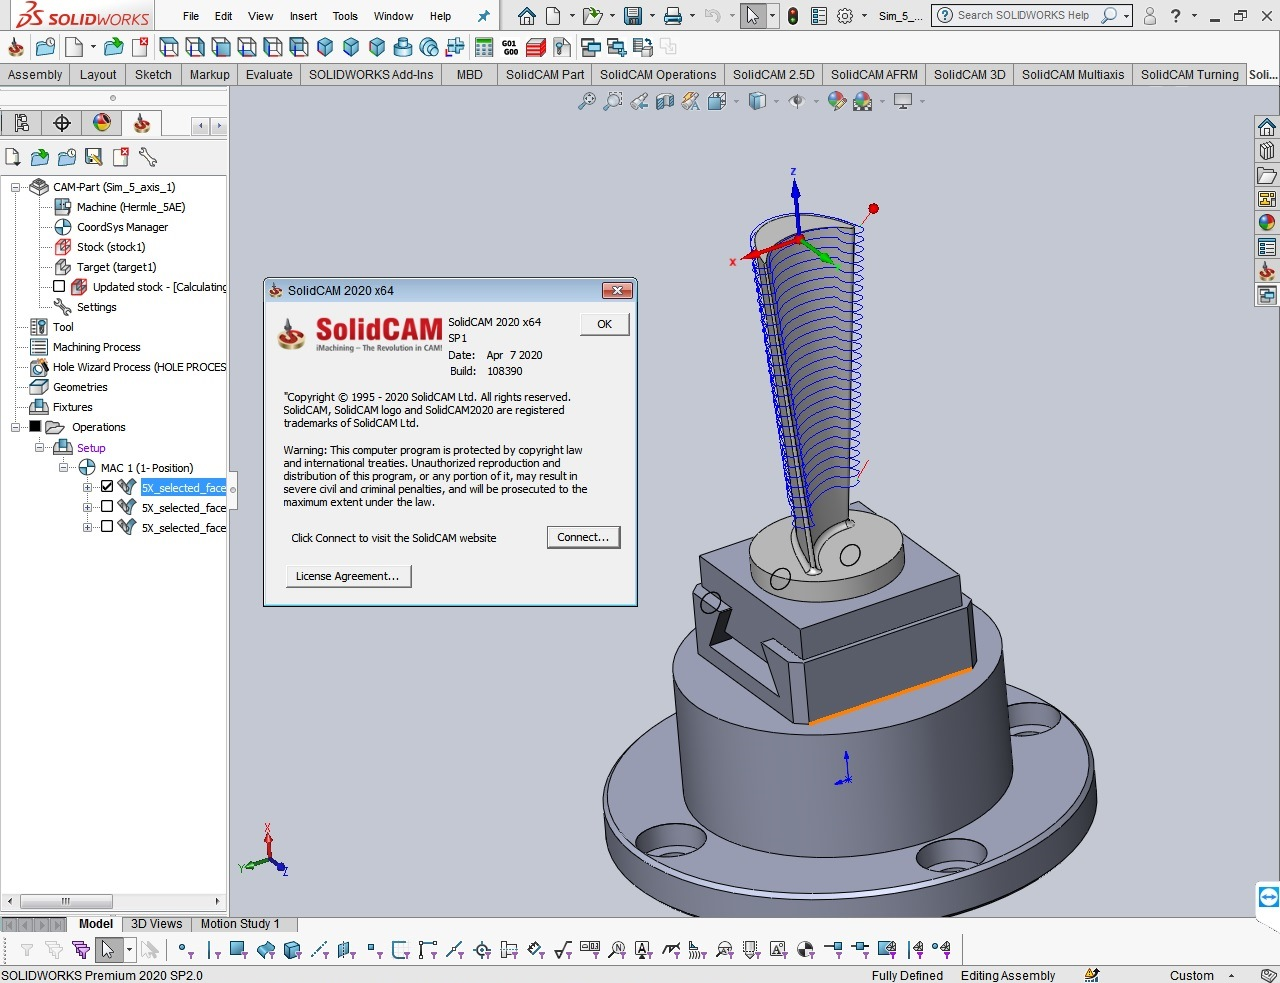 Programming with SolidCAM 2020 SP1 for SolidWorks 2012-2020 full